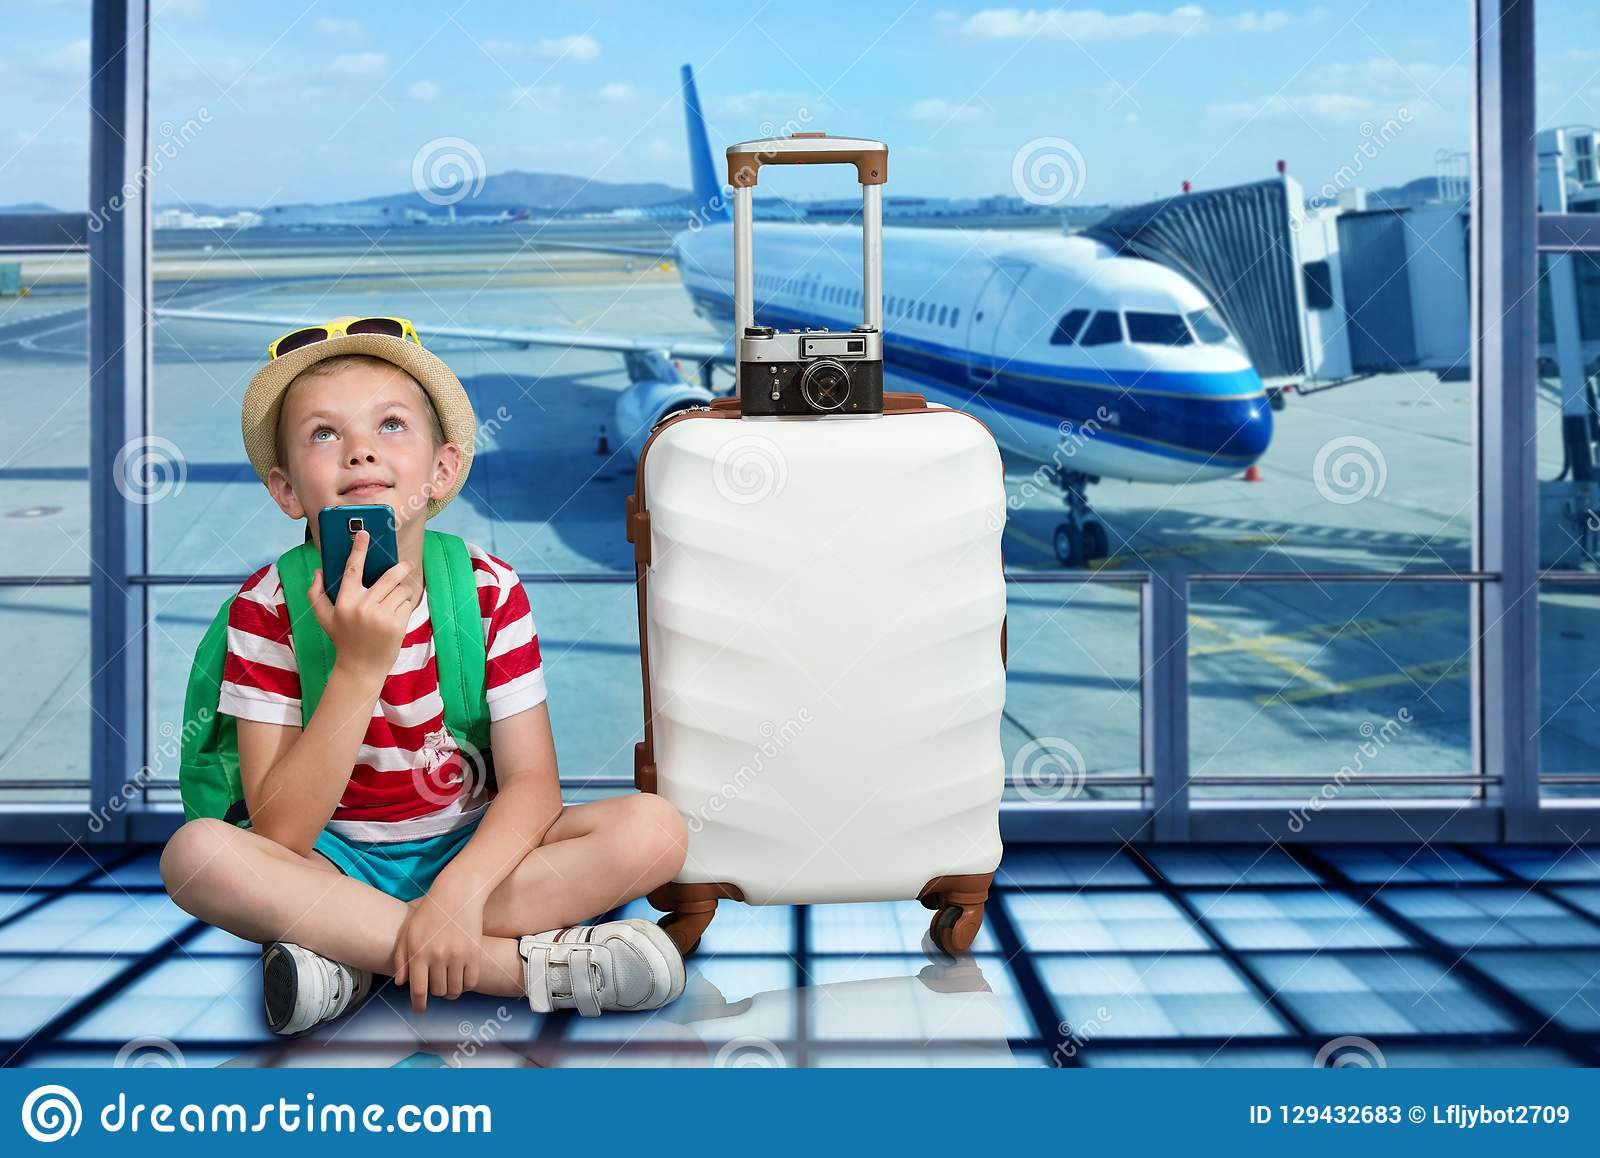 A boy with a suitcase sits at the airport and waits for landing on the plane.